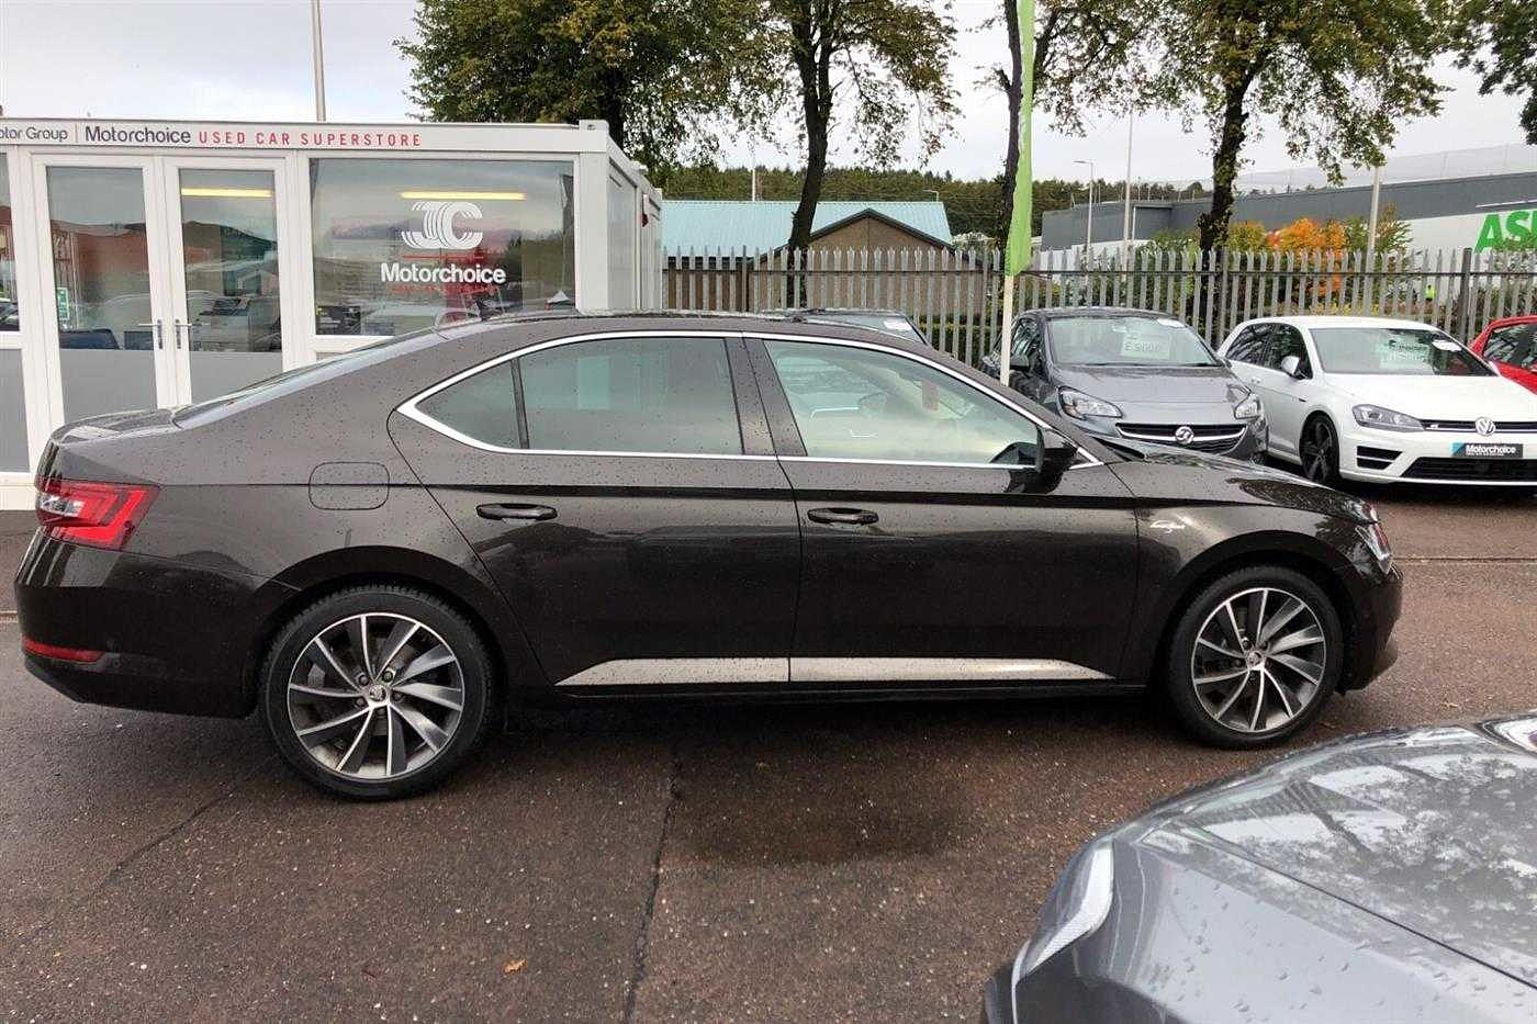 SKODA Superb 2.0 TDI (150PS) Laurin&Klement DSG 5Dr H/B